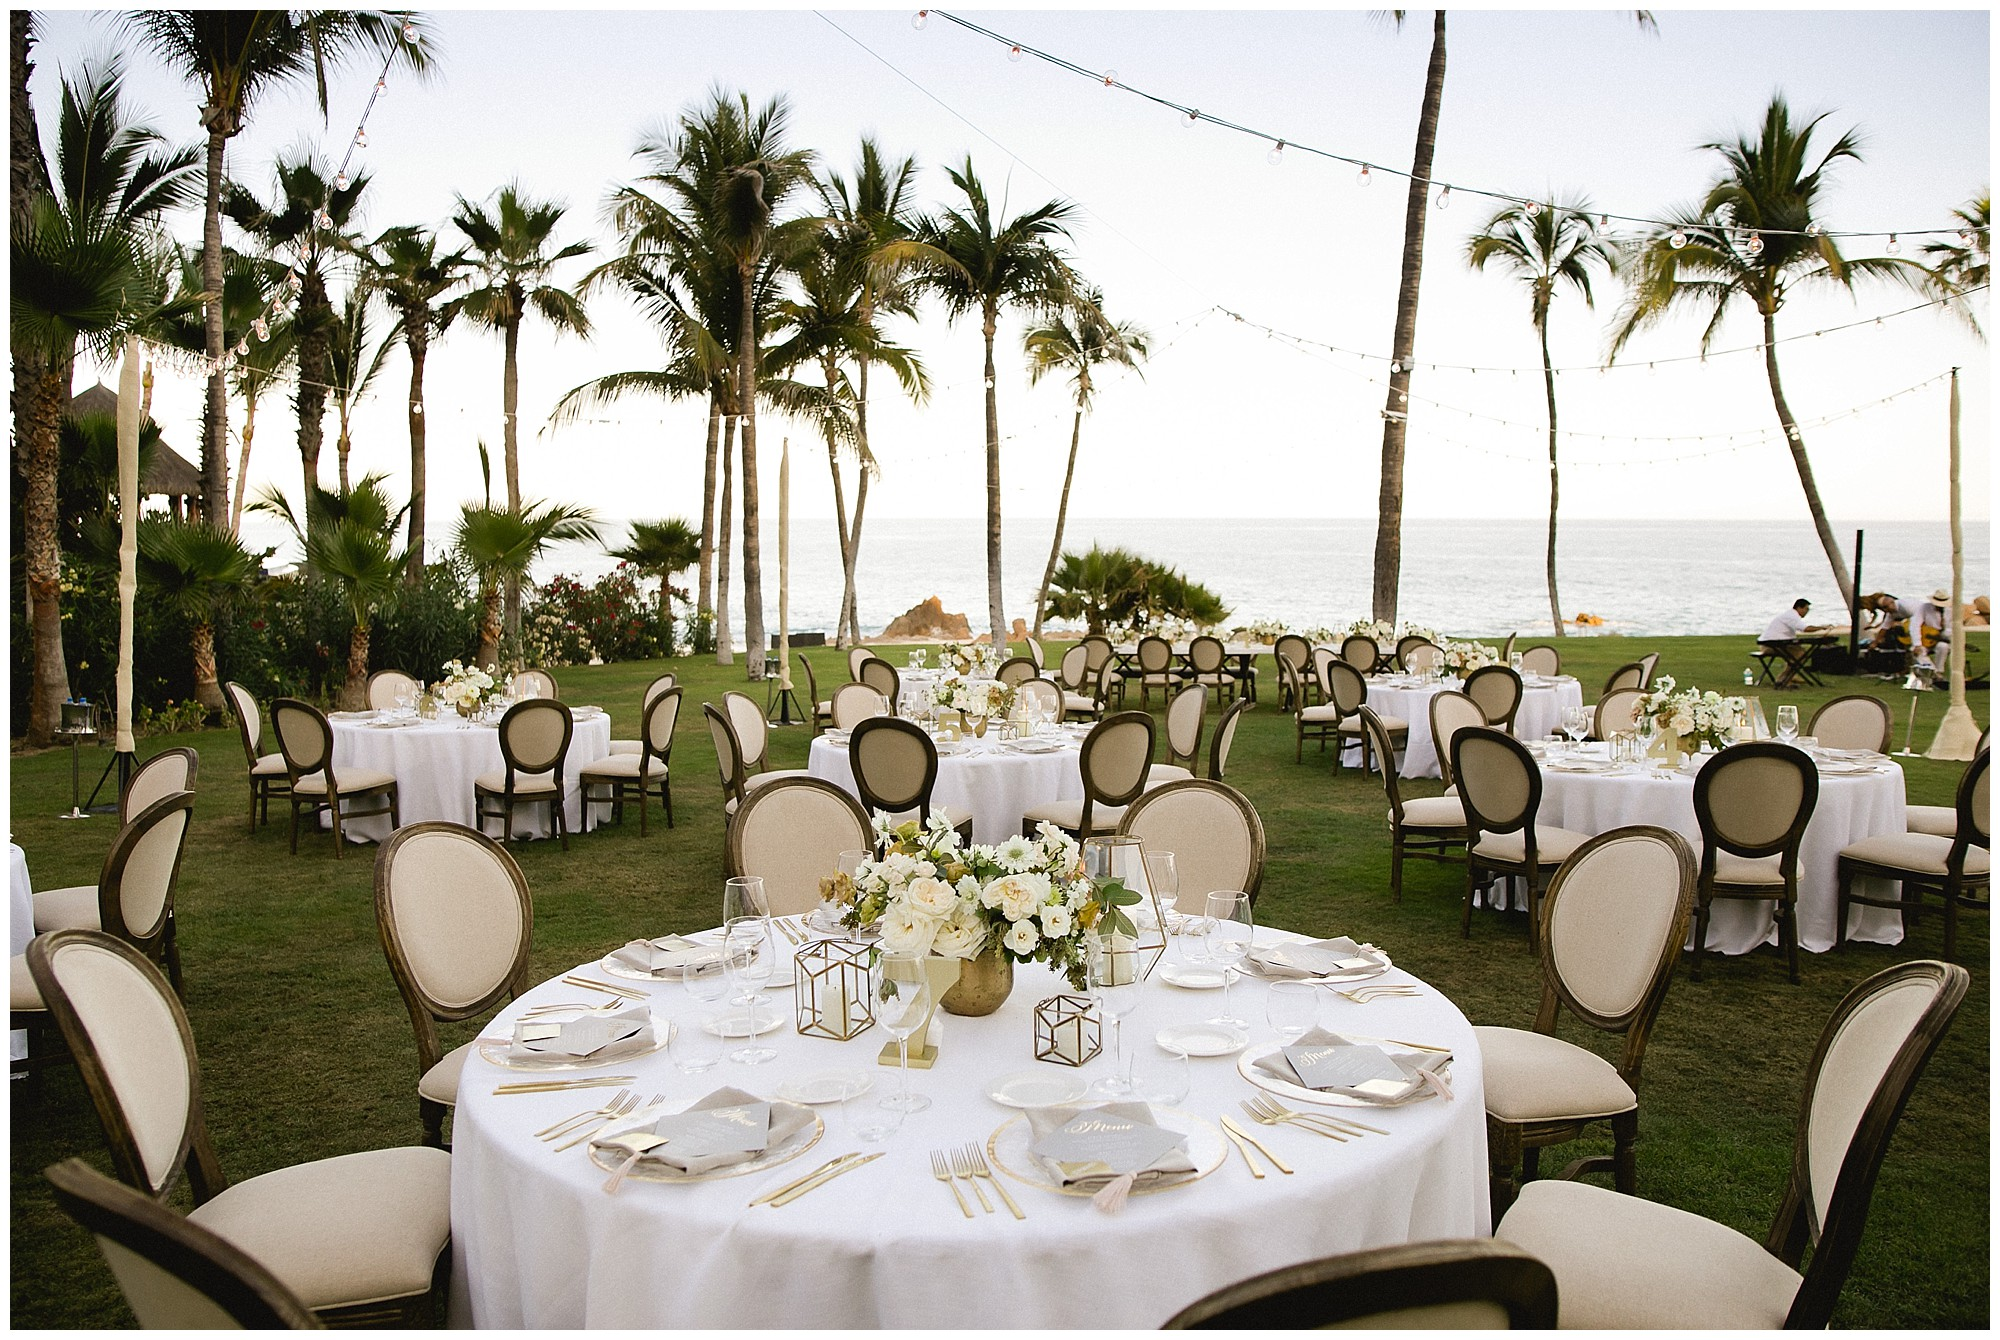 elegant white tablescapes at a one&only Palmilla wedding